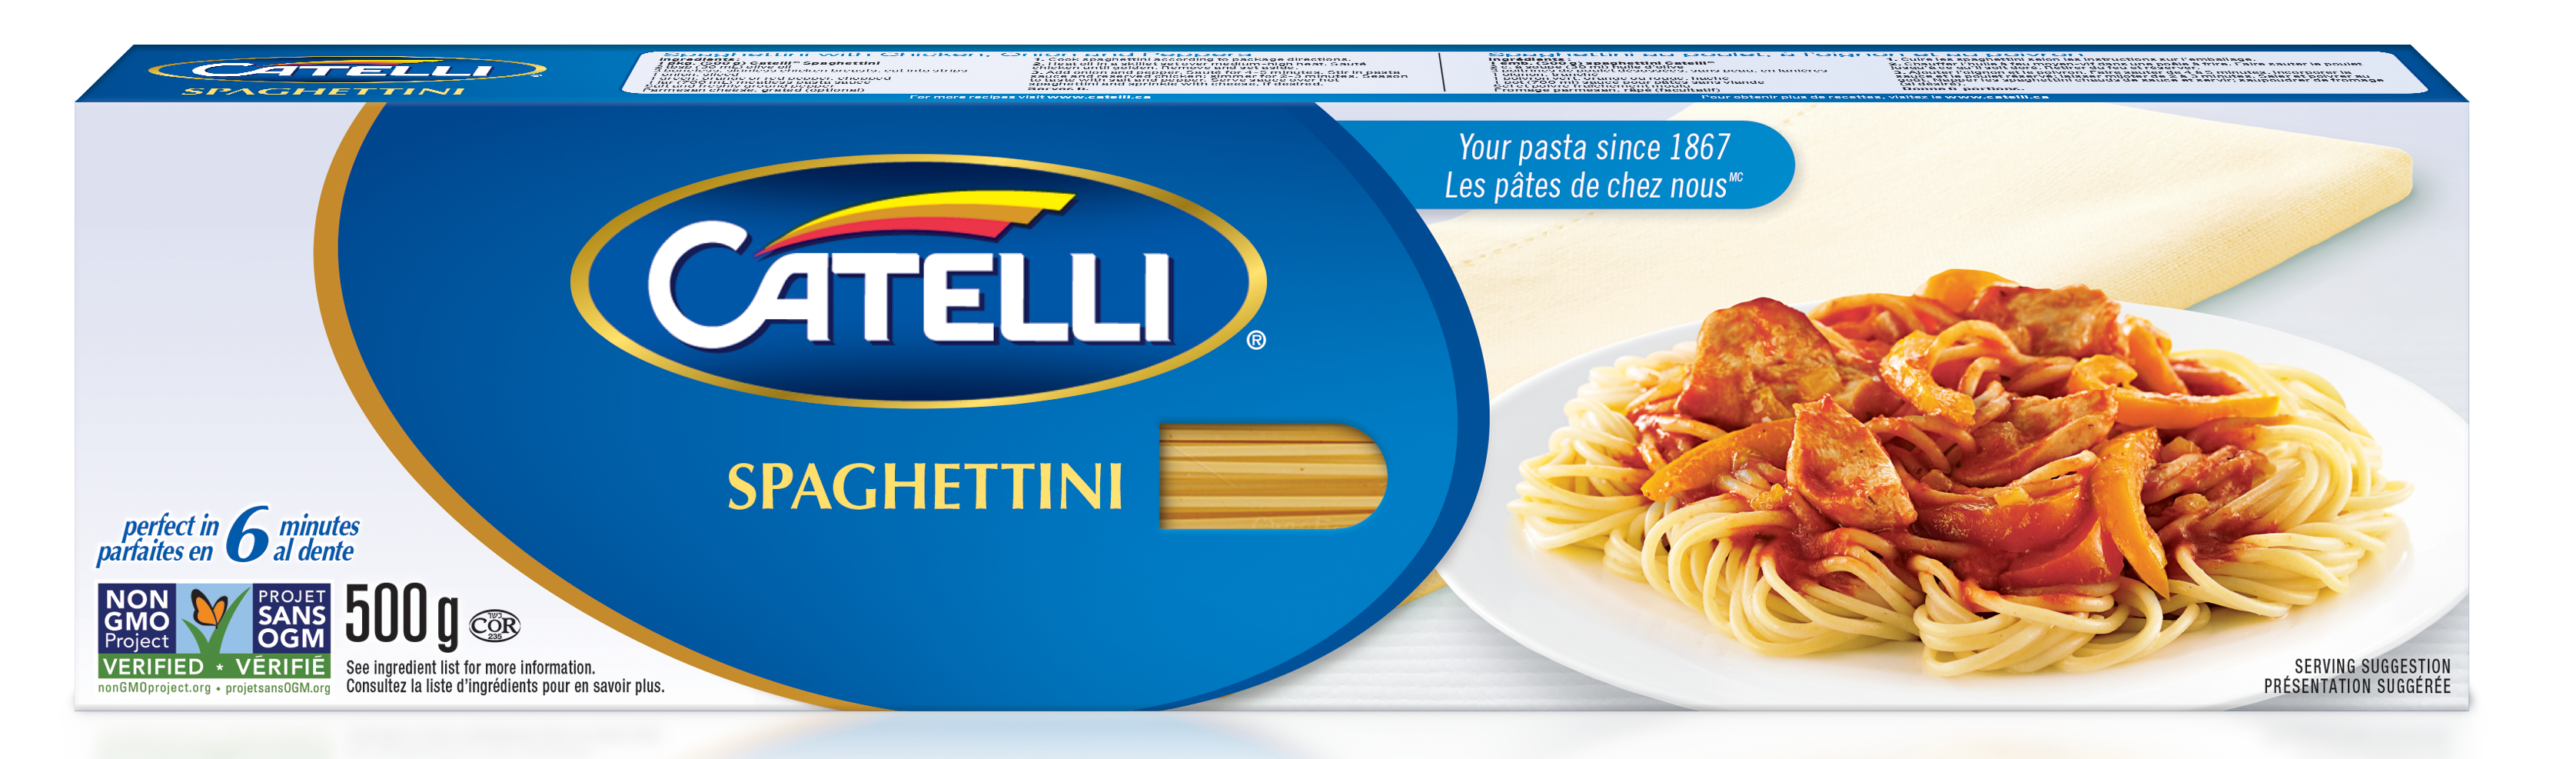 Catelli Classic Spaghettini